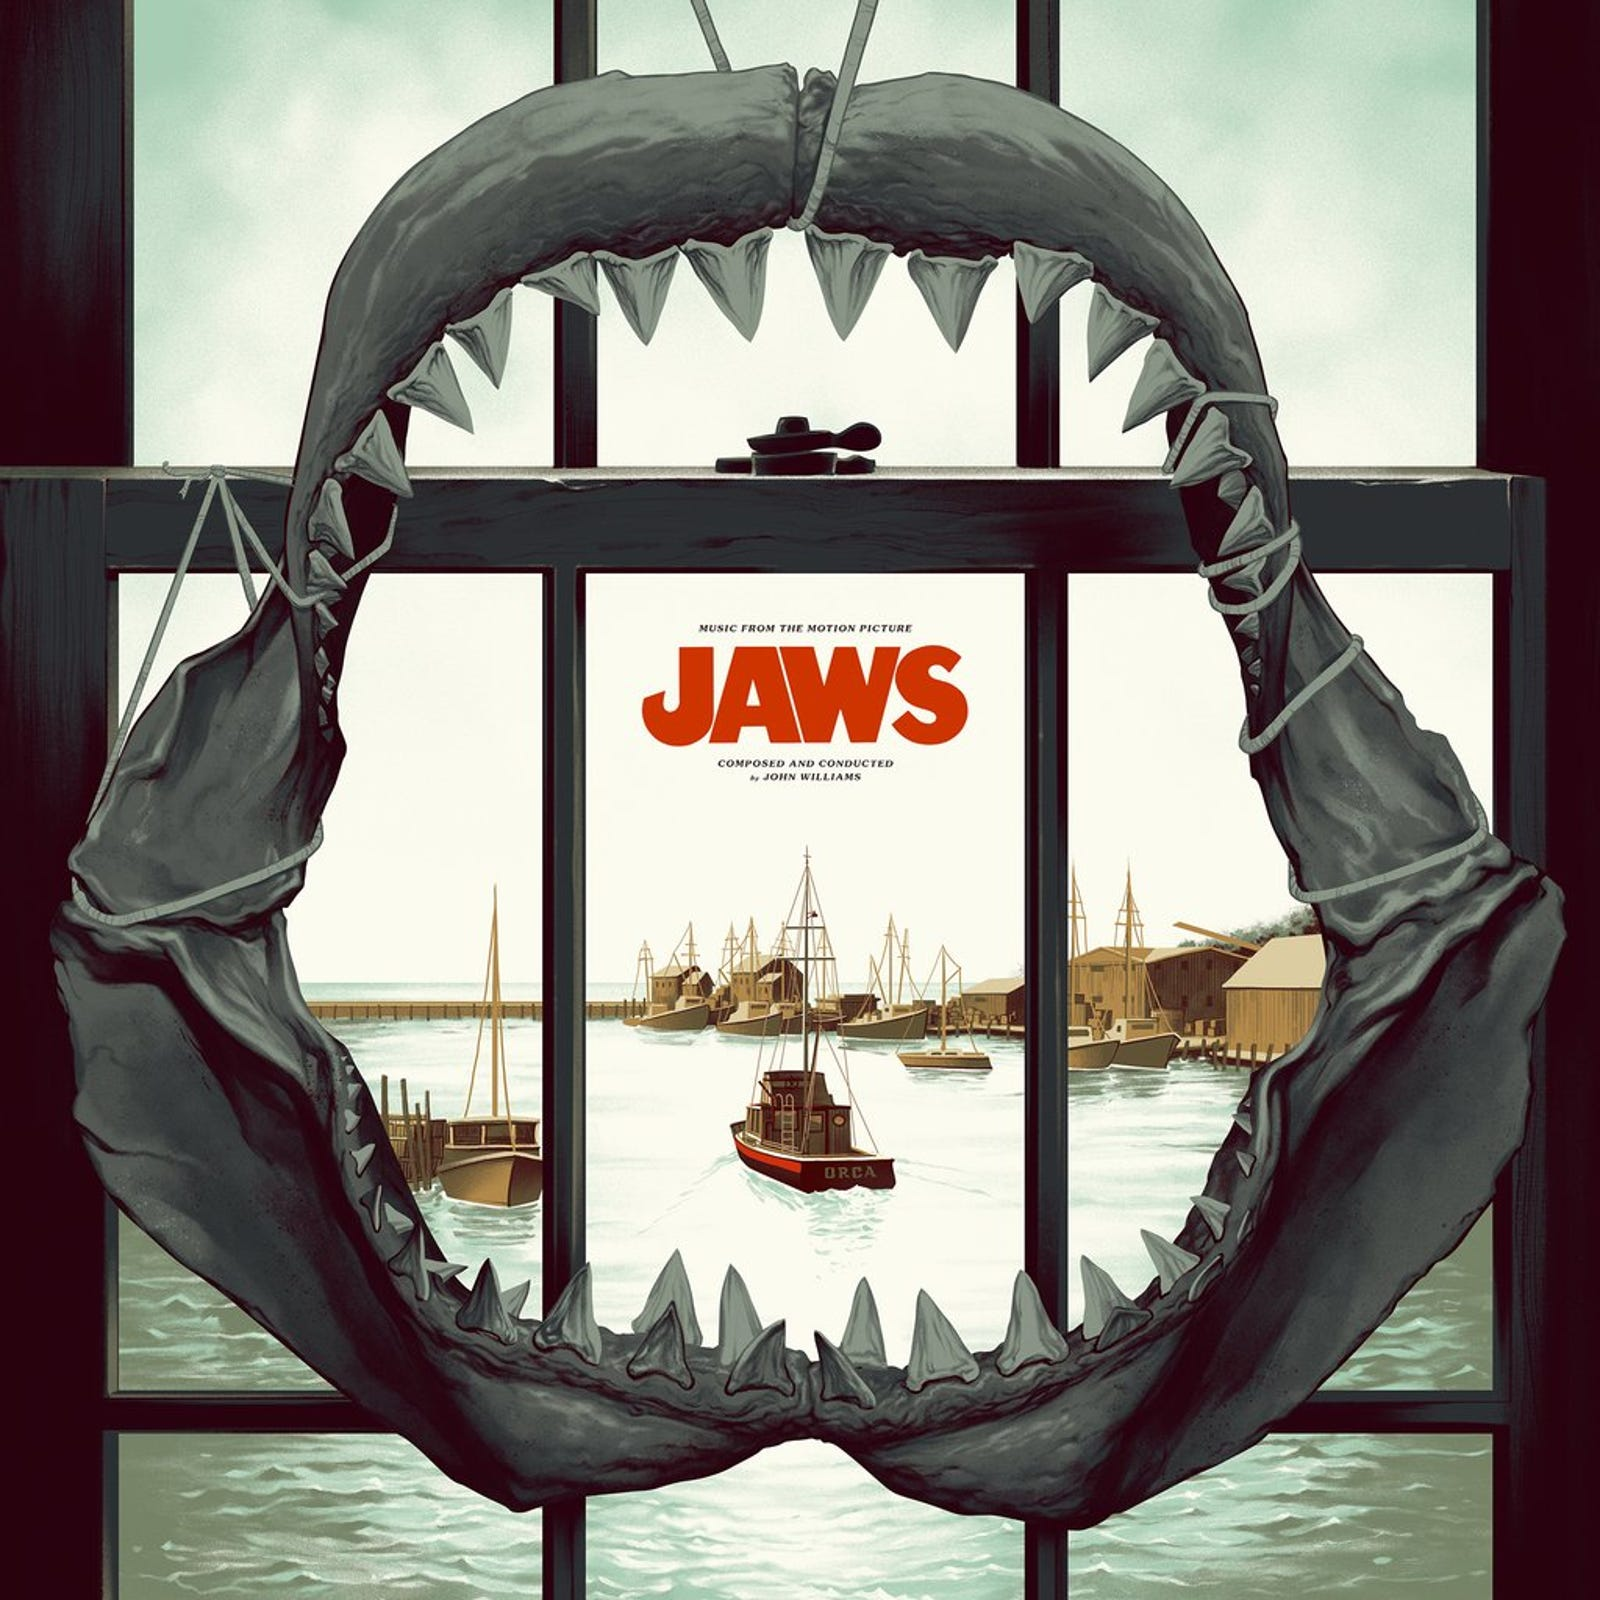 The Jaws vinyl cover